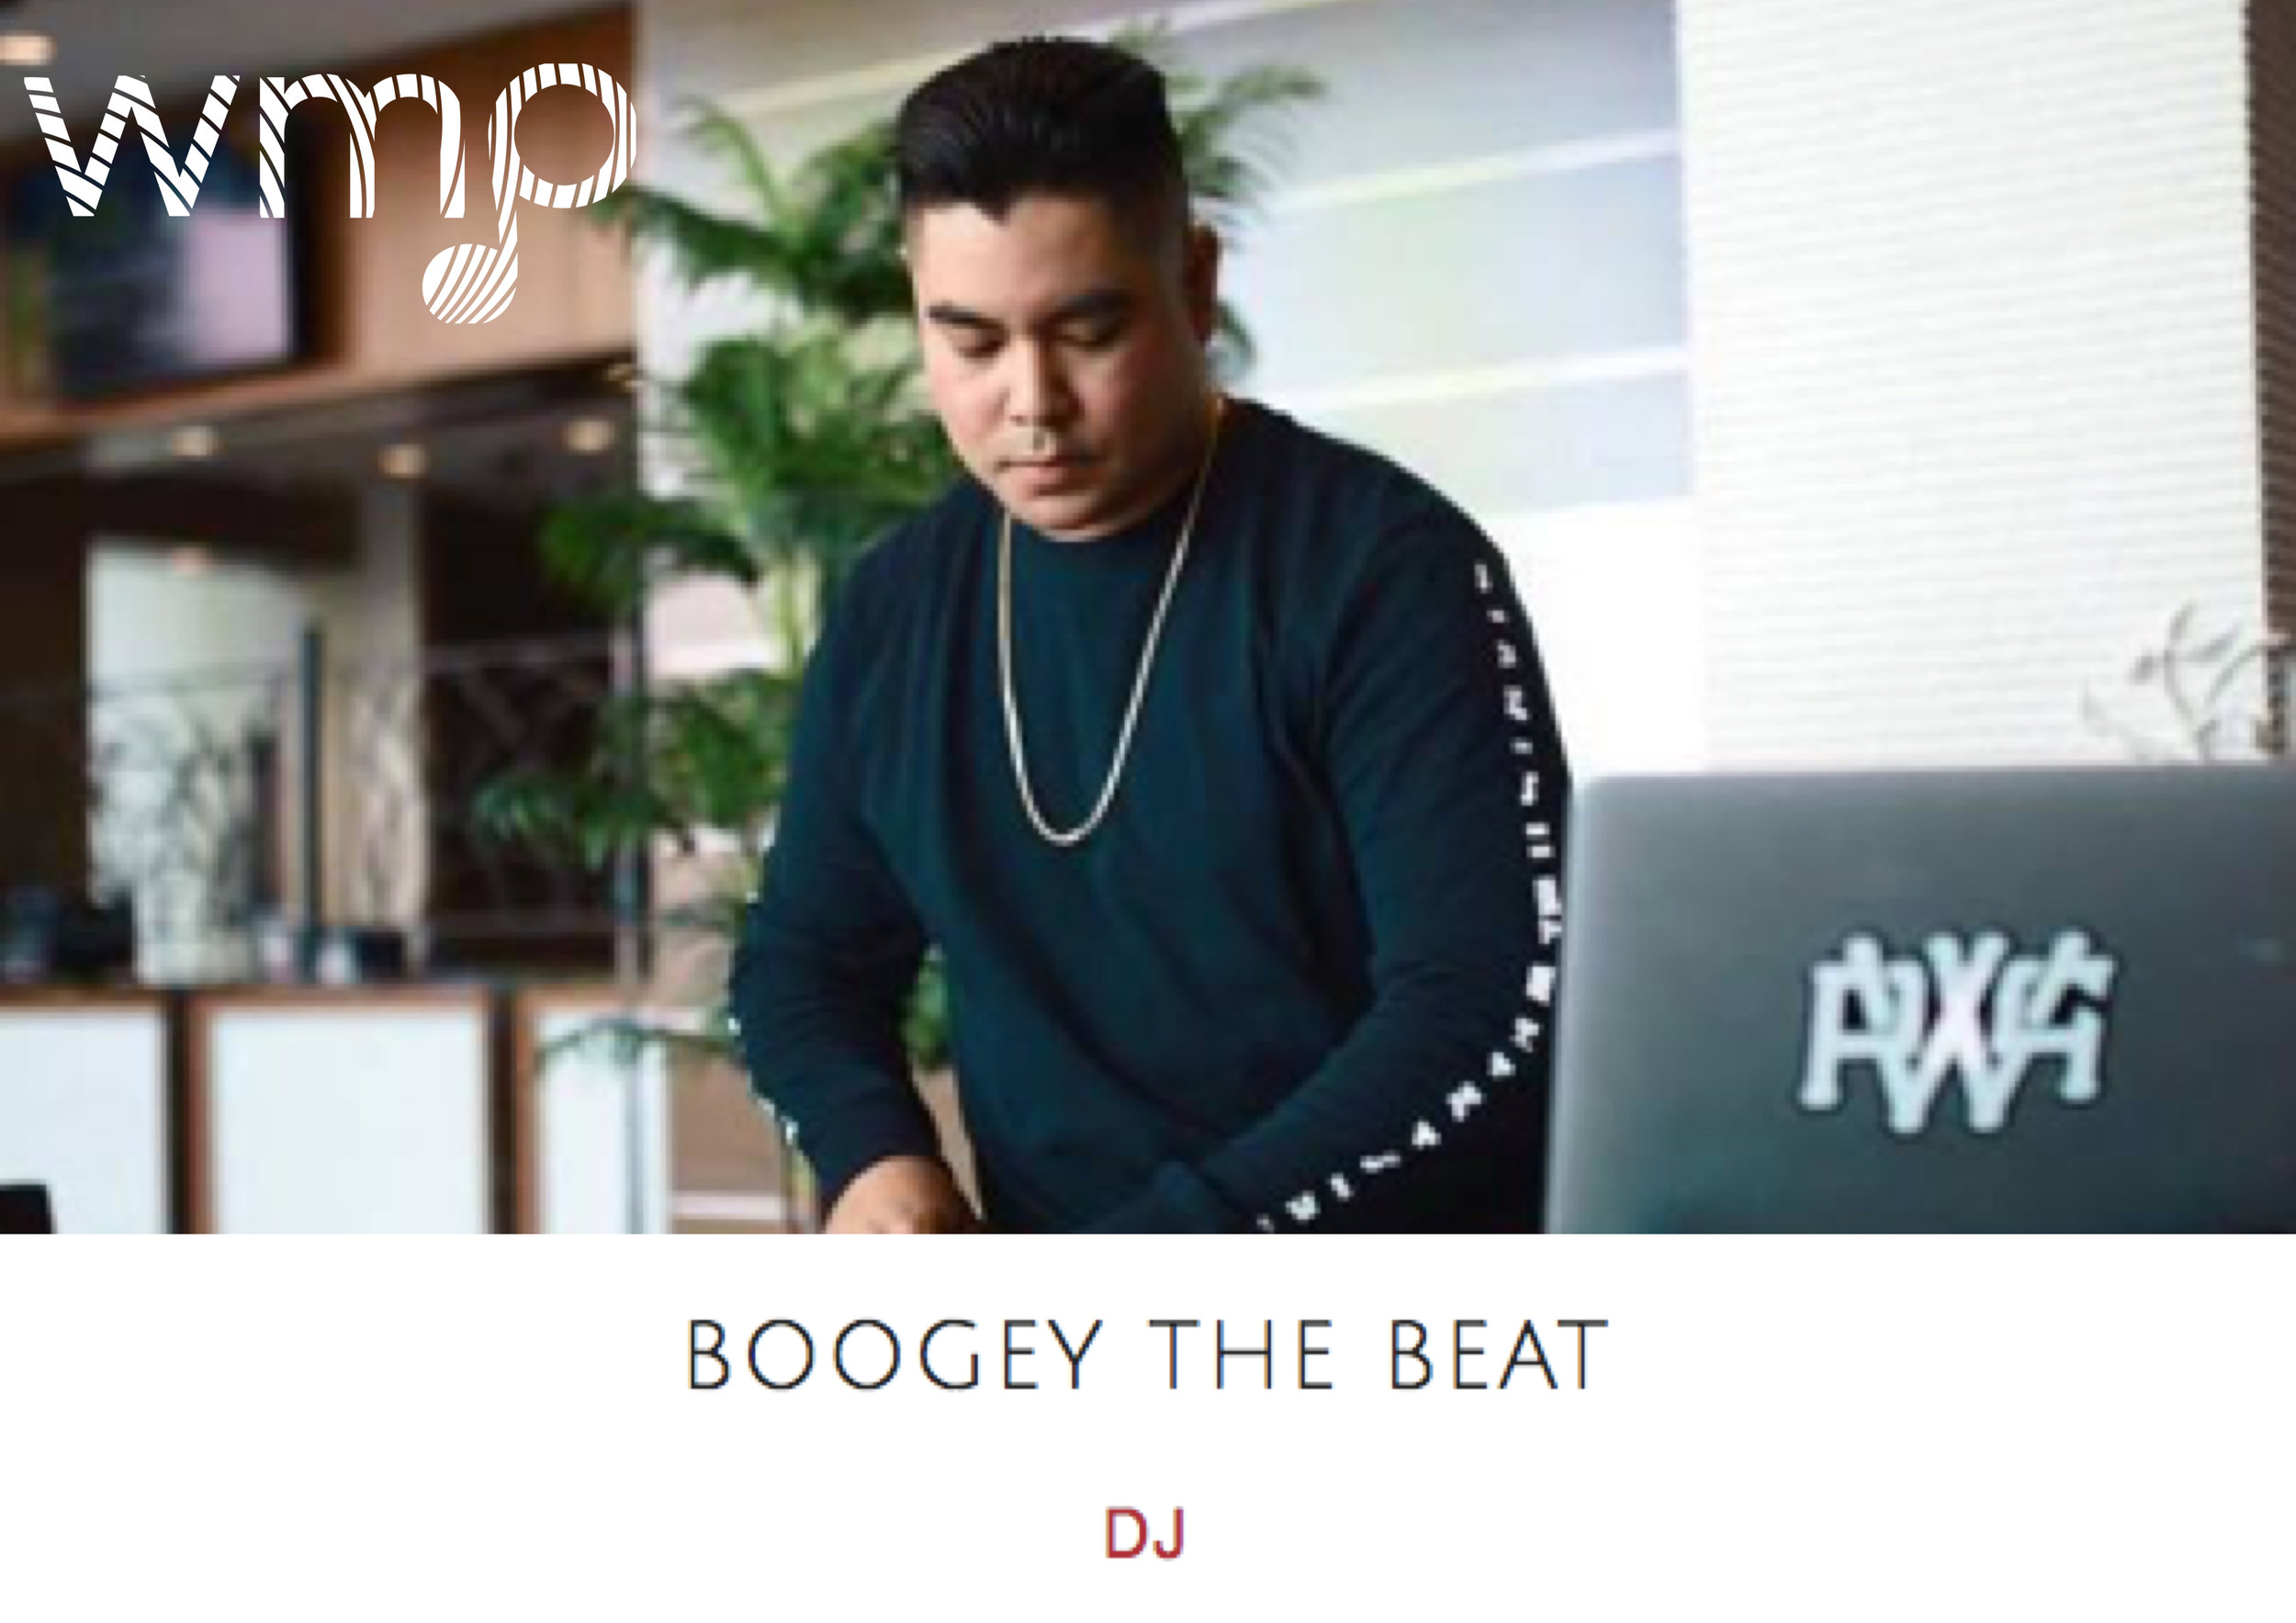 Top10-Boogey The Beat.jpg